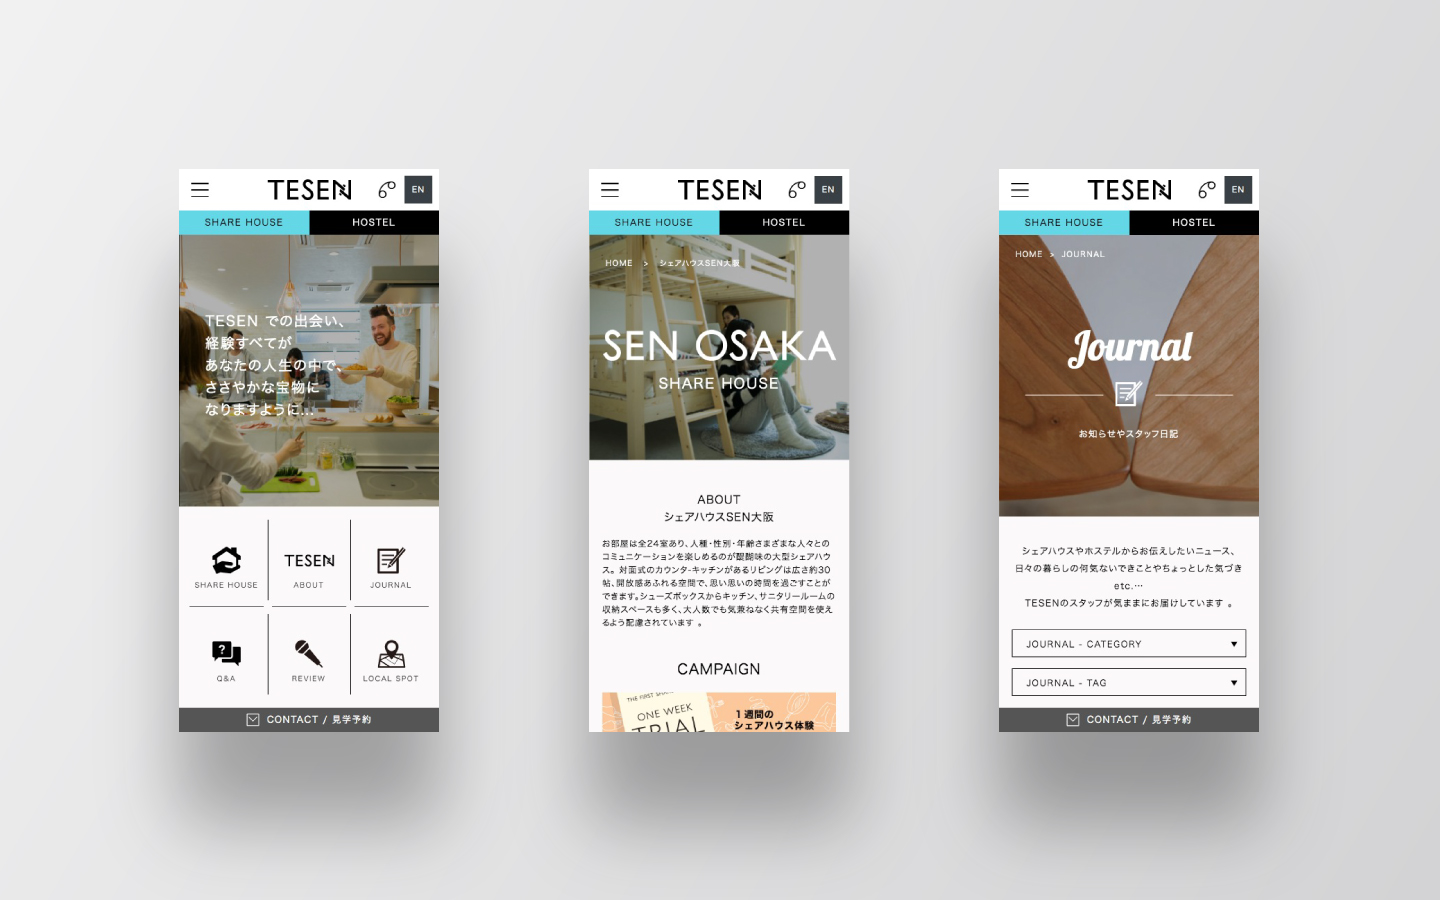 TESEN SHARE HOUSE & HOSTEL|Web Design|Smart Phone